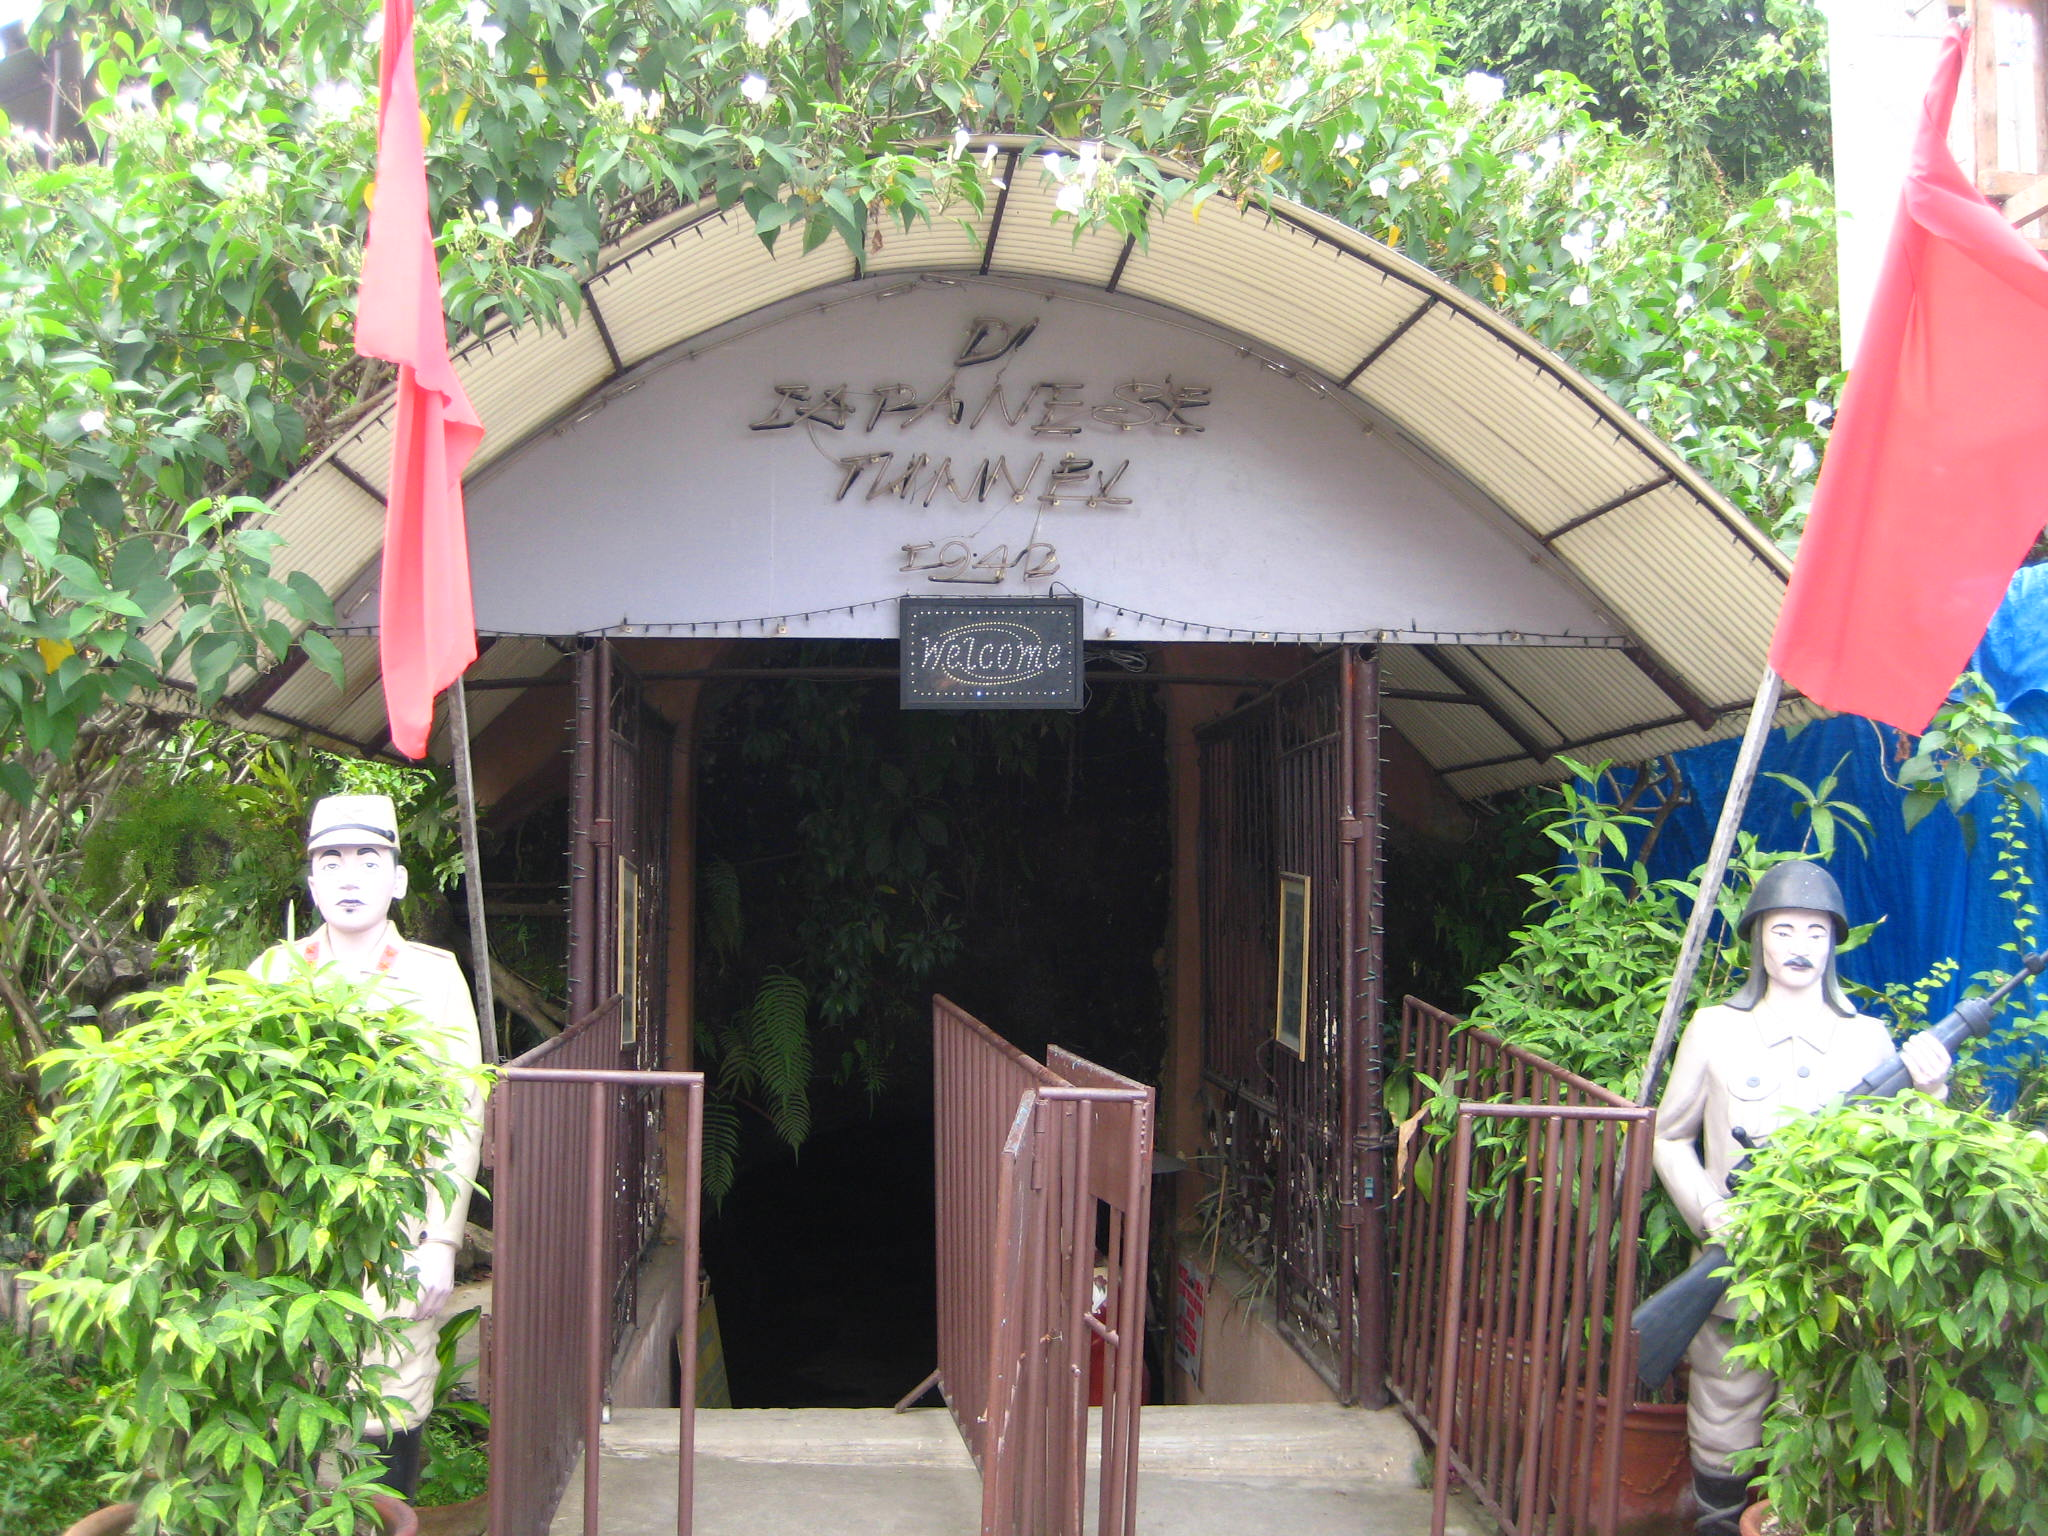 Real Japanese Tunnel in the Philippines